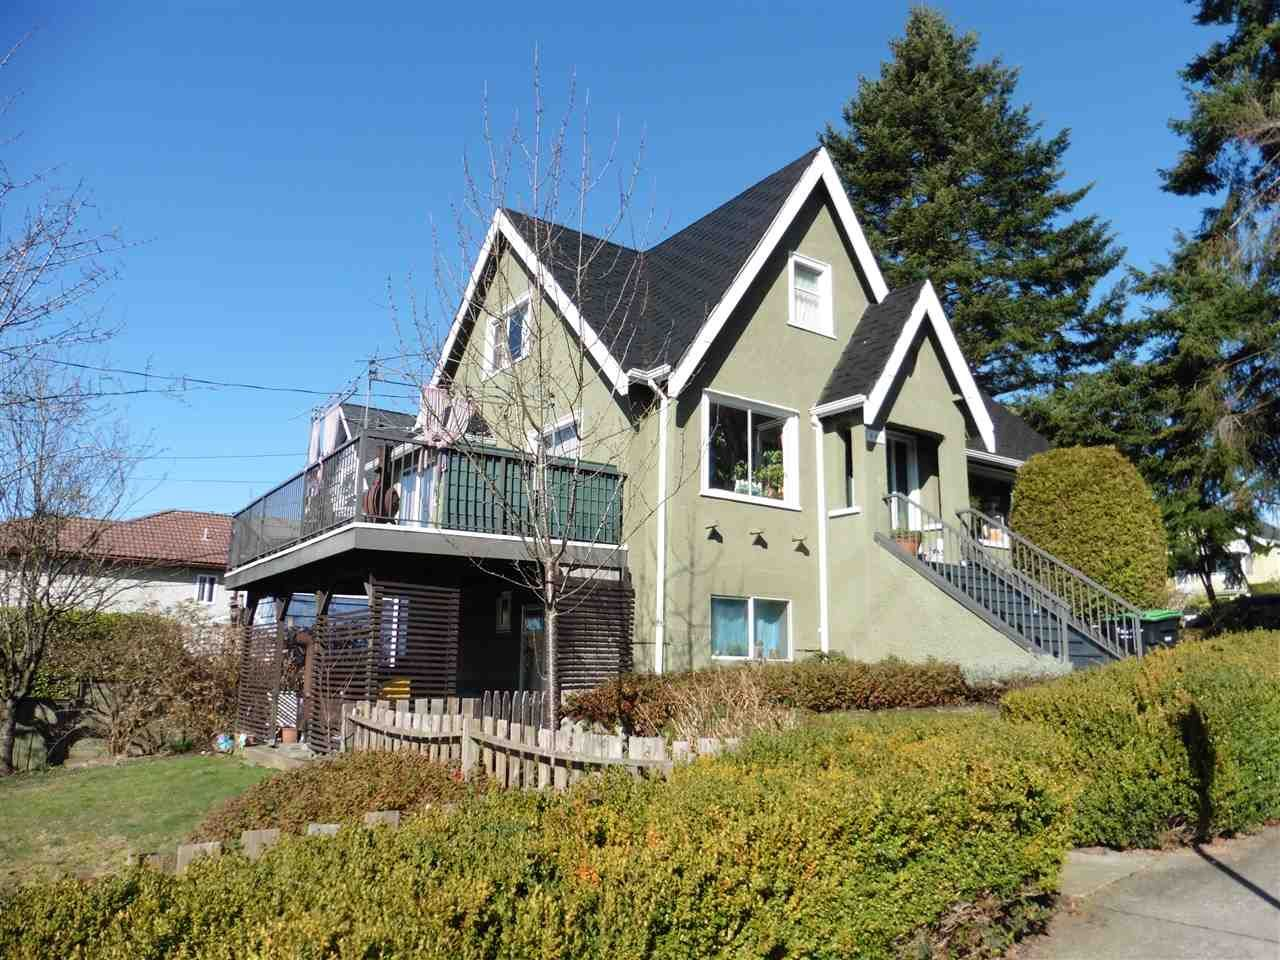 Main Photo: 333 BOUNDARY Road in Vancouver: Hastings Sunrise House for sale (Vancouver East)  : MLS®# R2577245